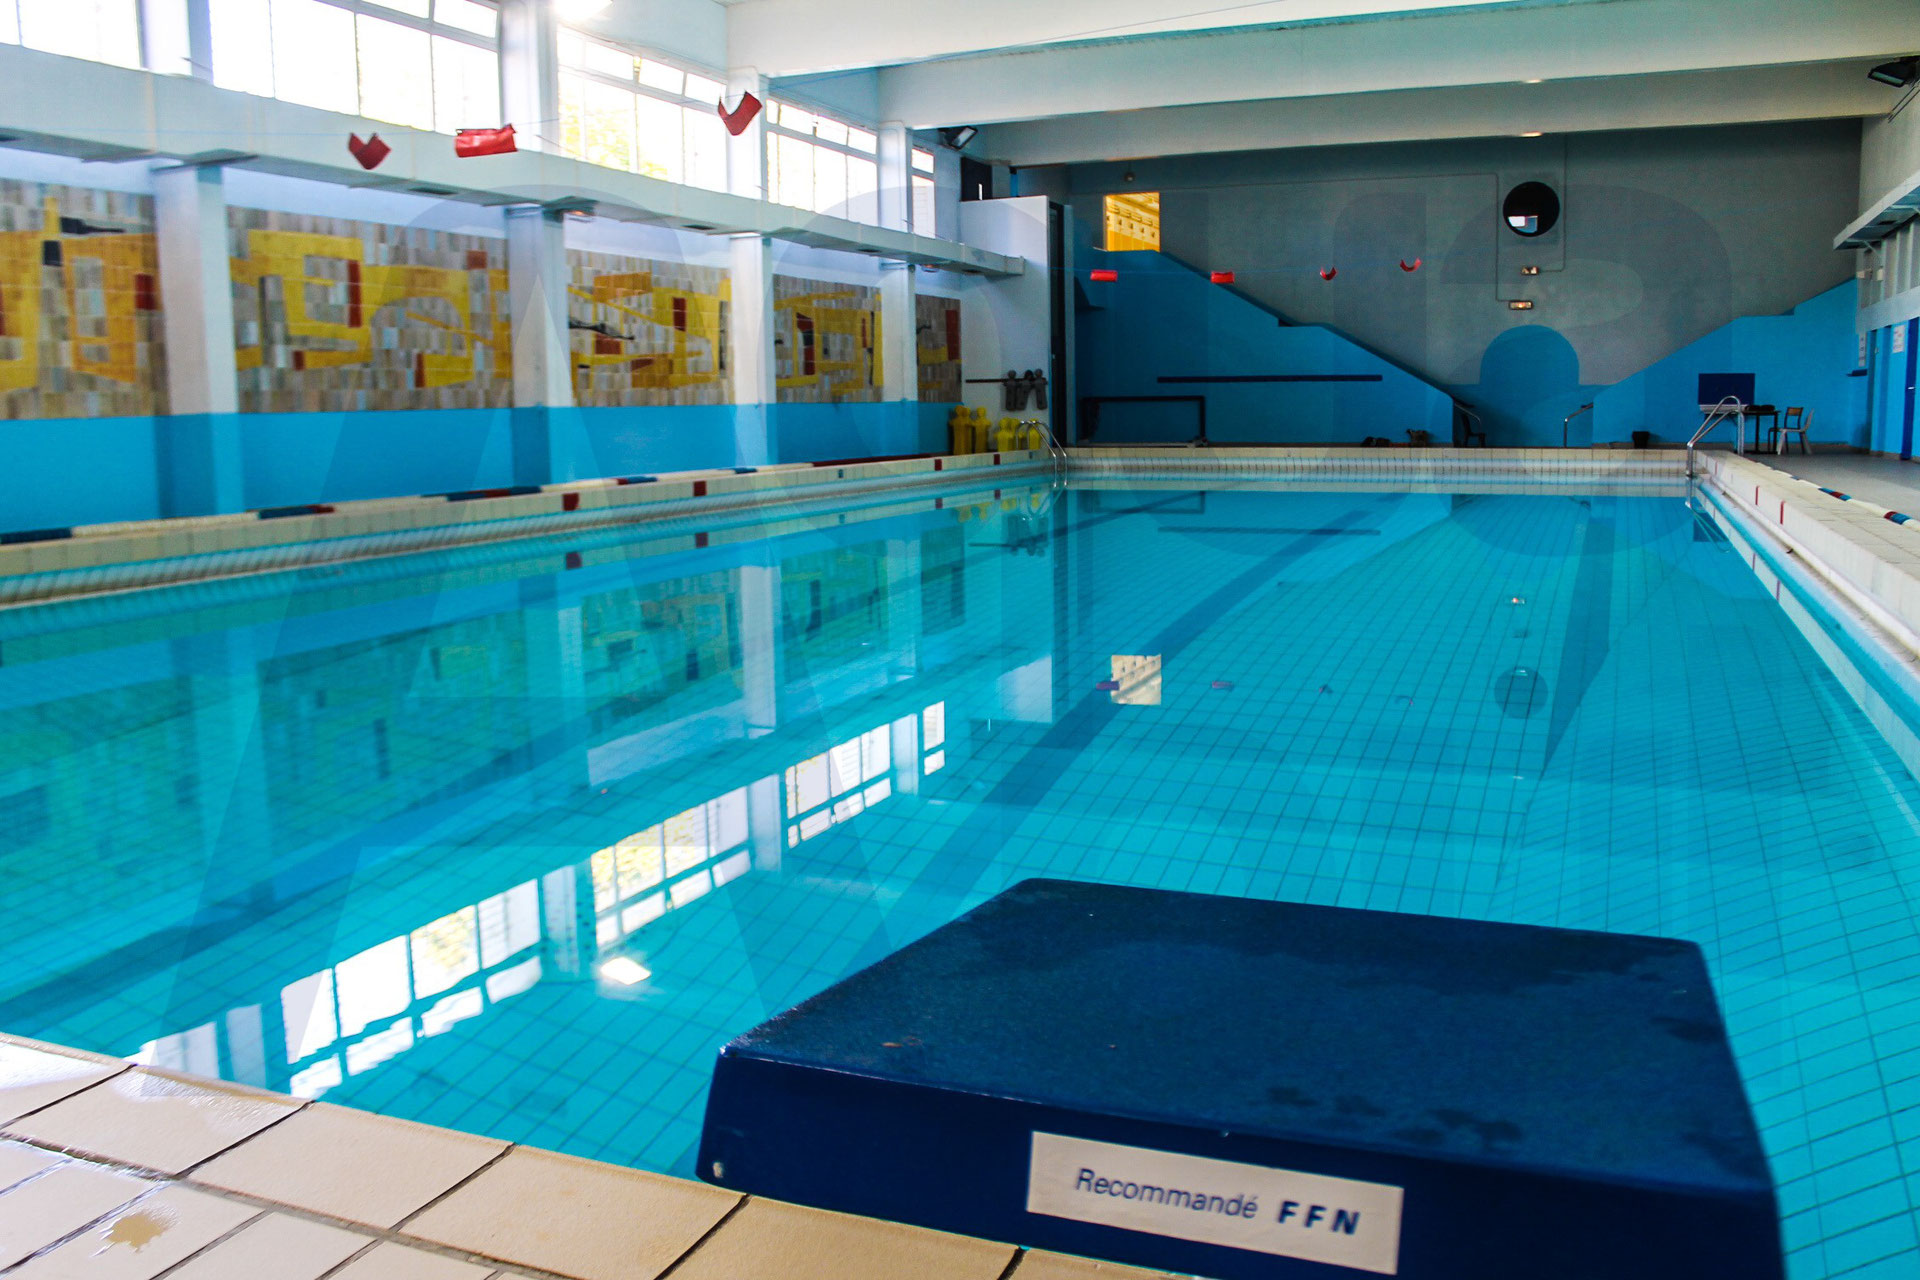 piscines aquabul marseille natation aquabike aquagym